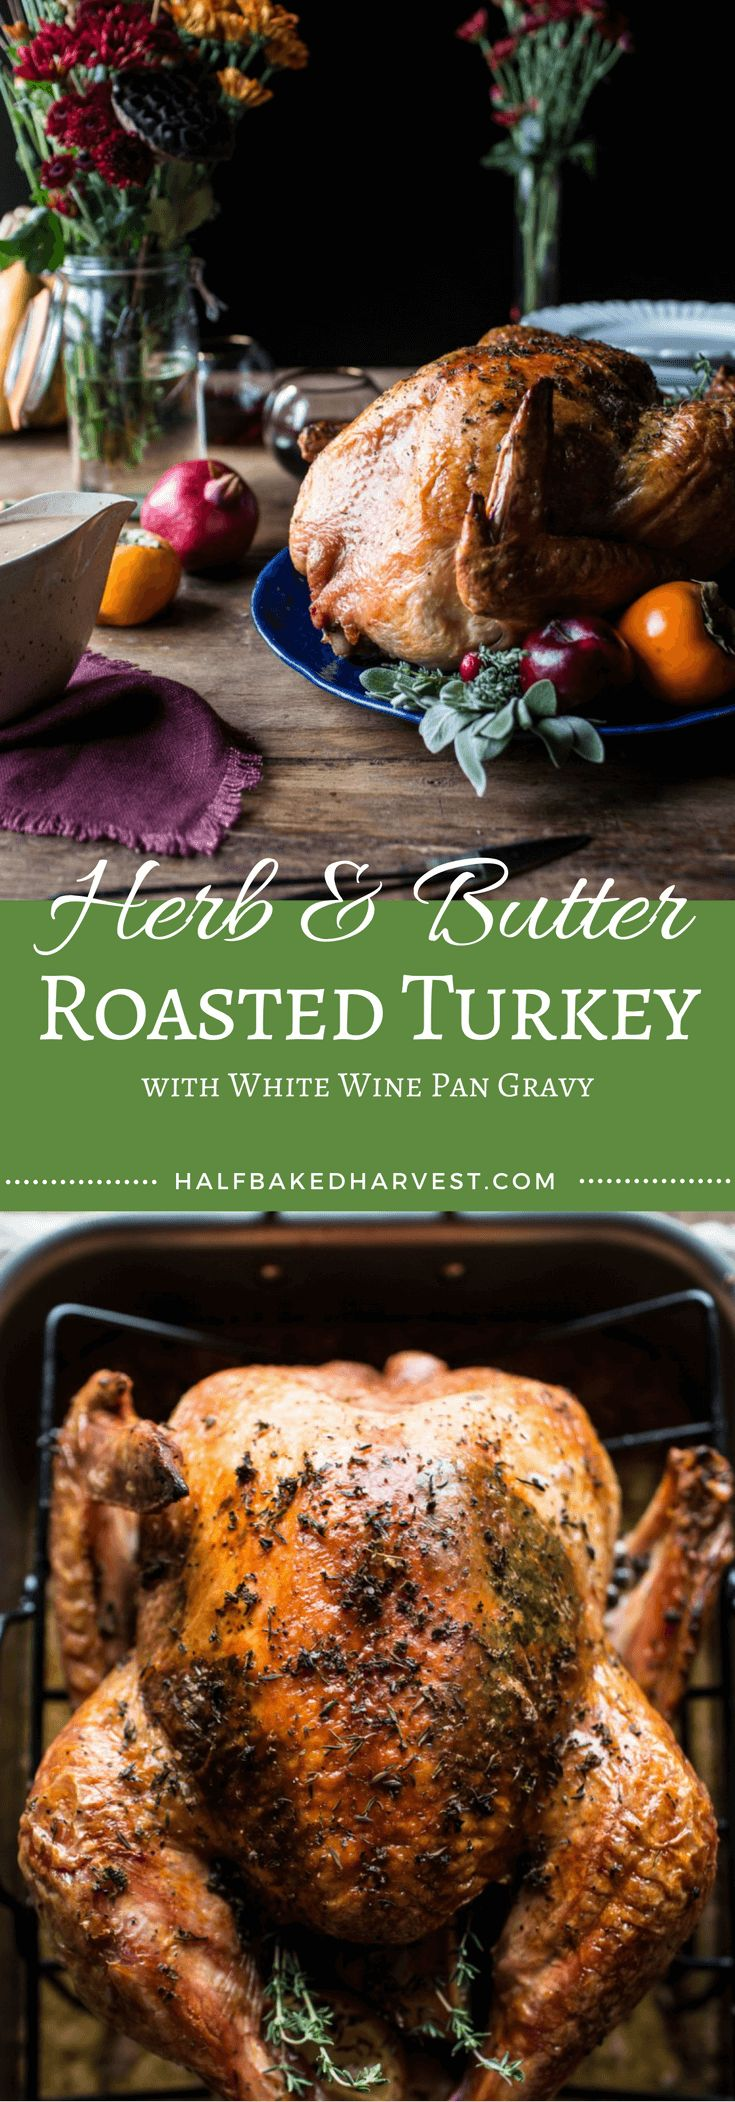 Herb and Butter Roasted Turkey with White Wine Pan Gravy   halfbakedharvest.com @hbharvest